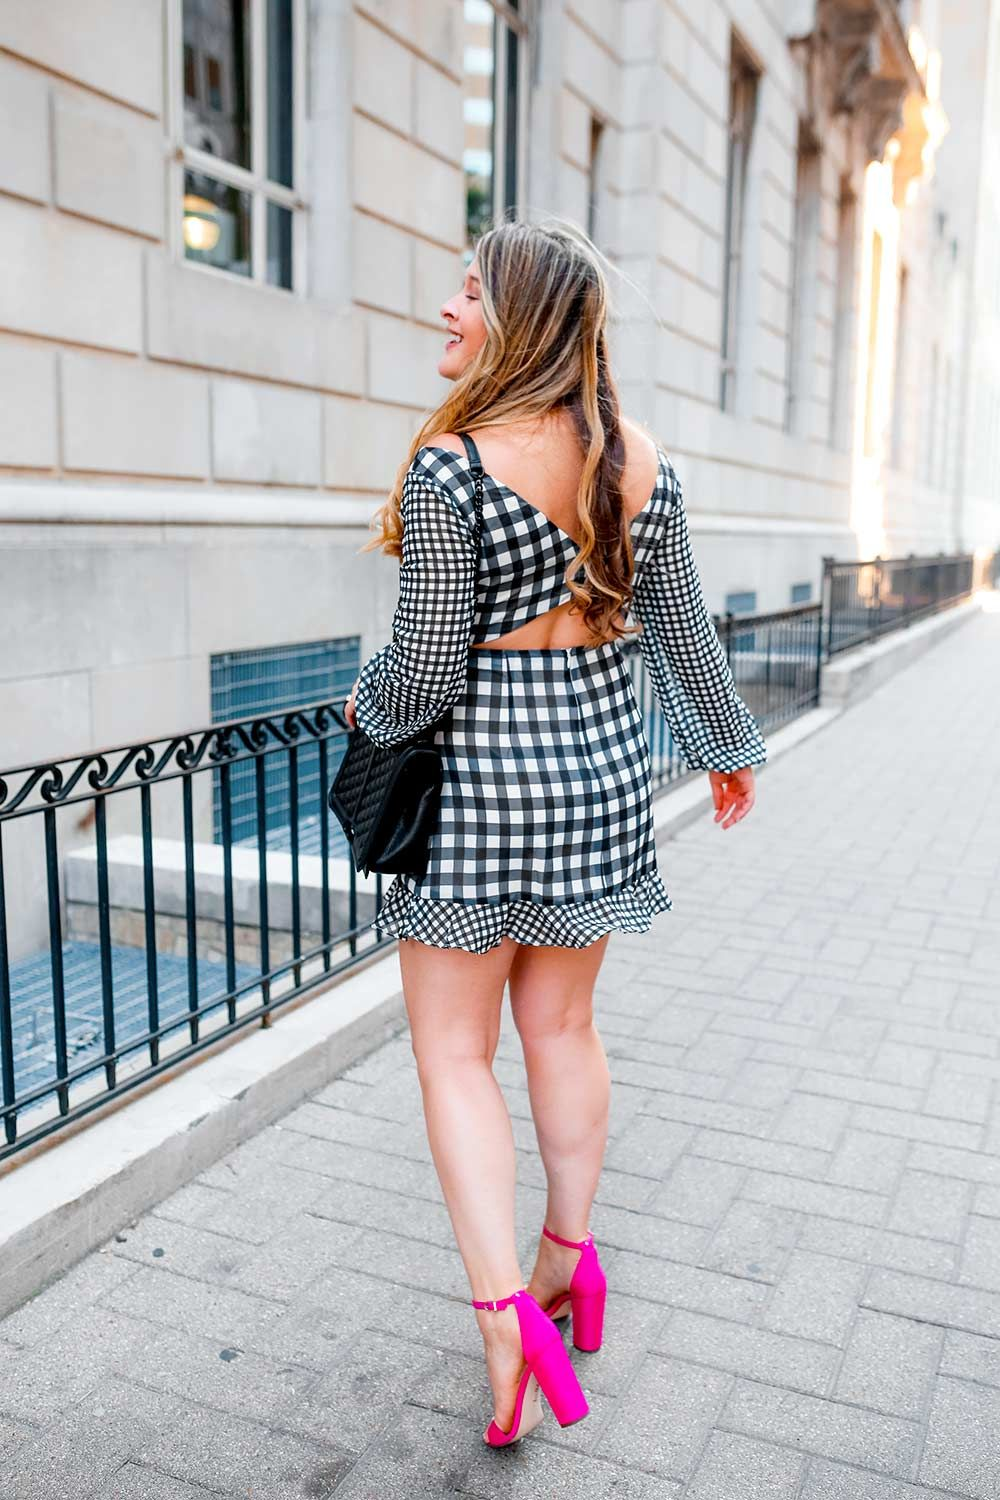 d793a794ec Gingham mini dress from REVOLVE with hot pink sandals by Sam Edelman. Dallas  fashion bloggers street style.